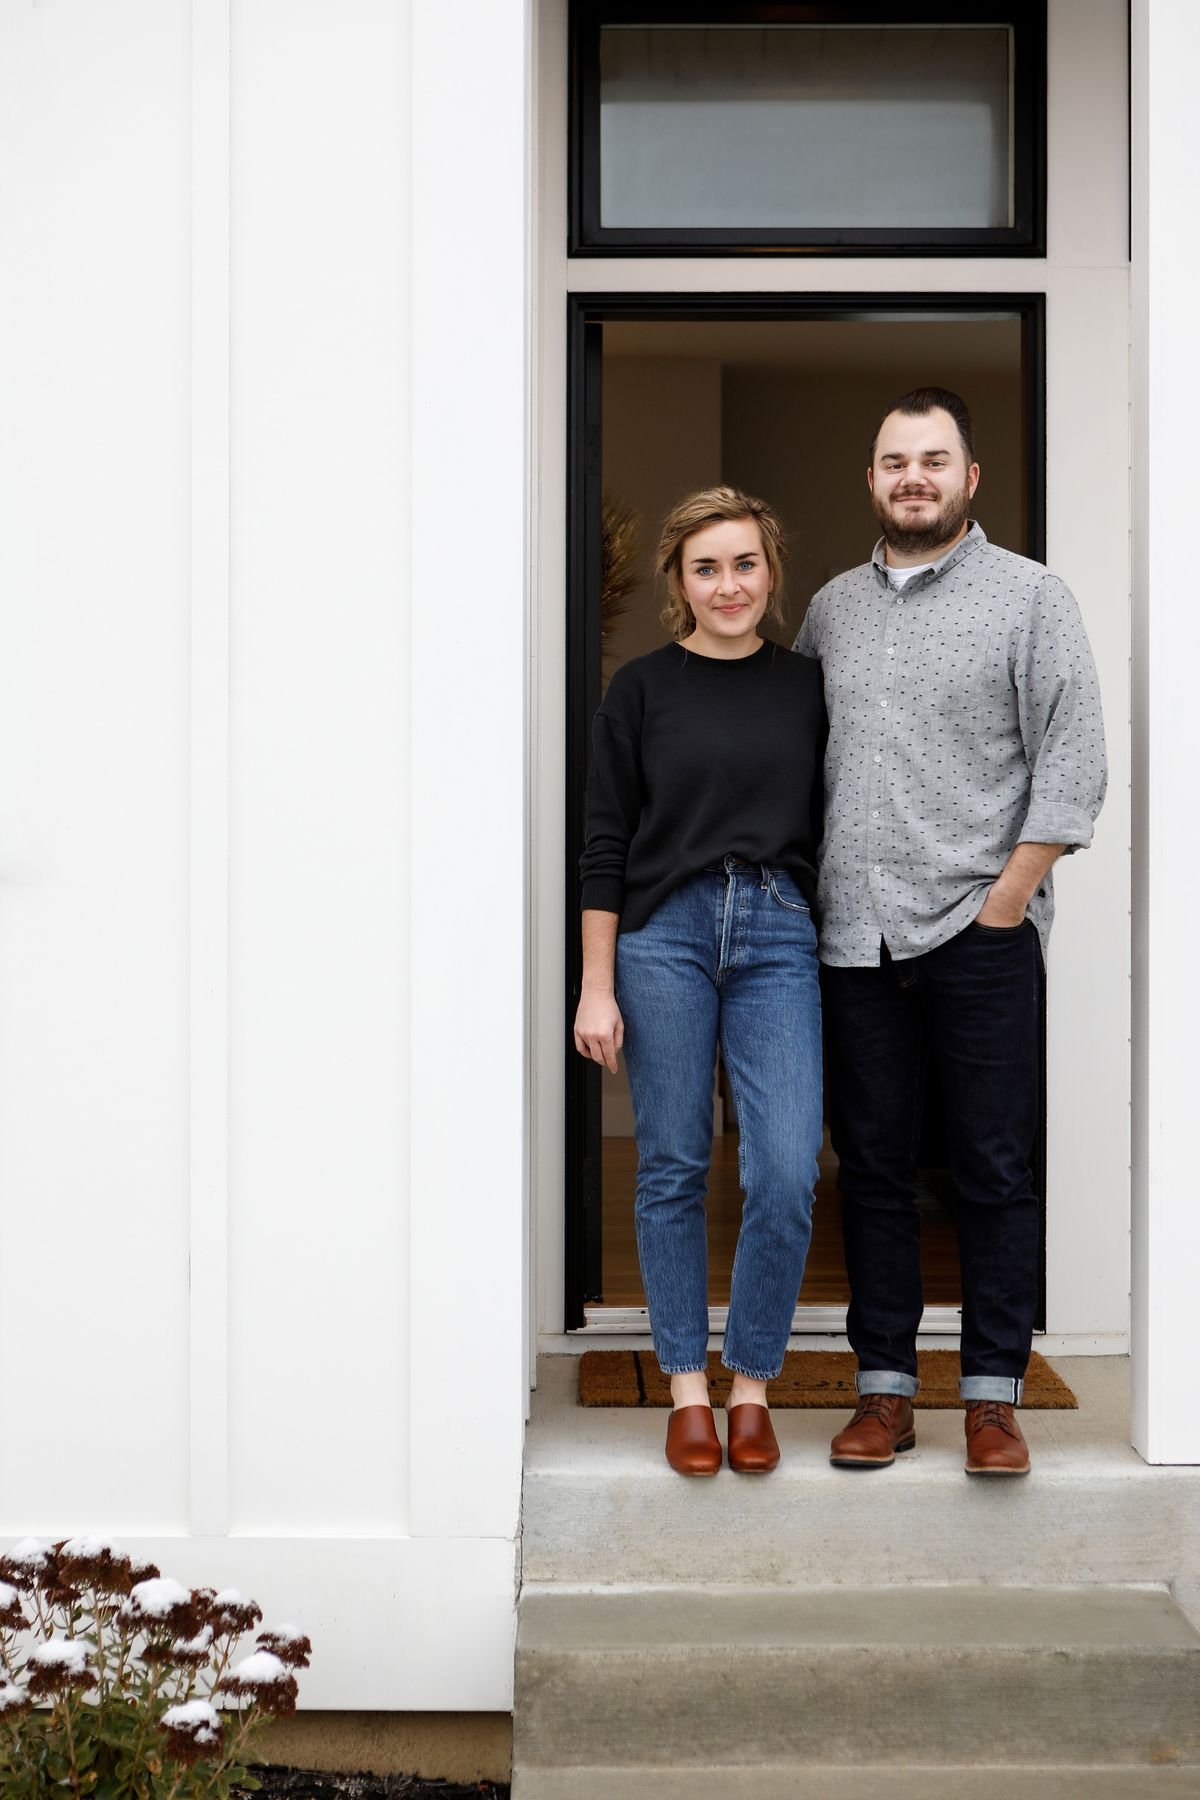 The homeowners, a man and woman, stand outside their front door. The front door is glass and they are both standing at the top of concrete stairs.